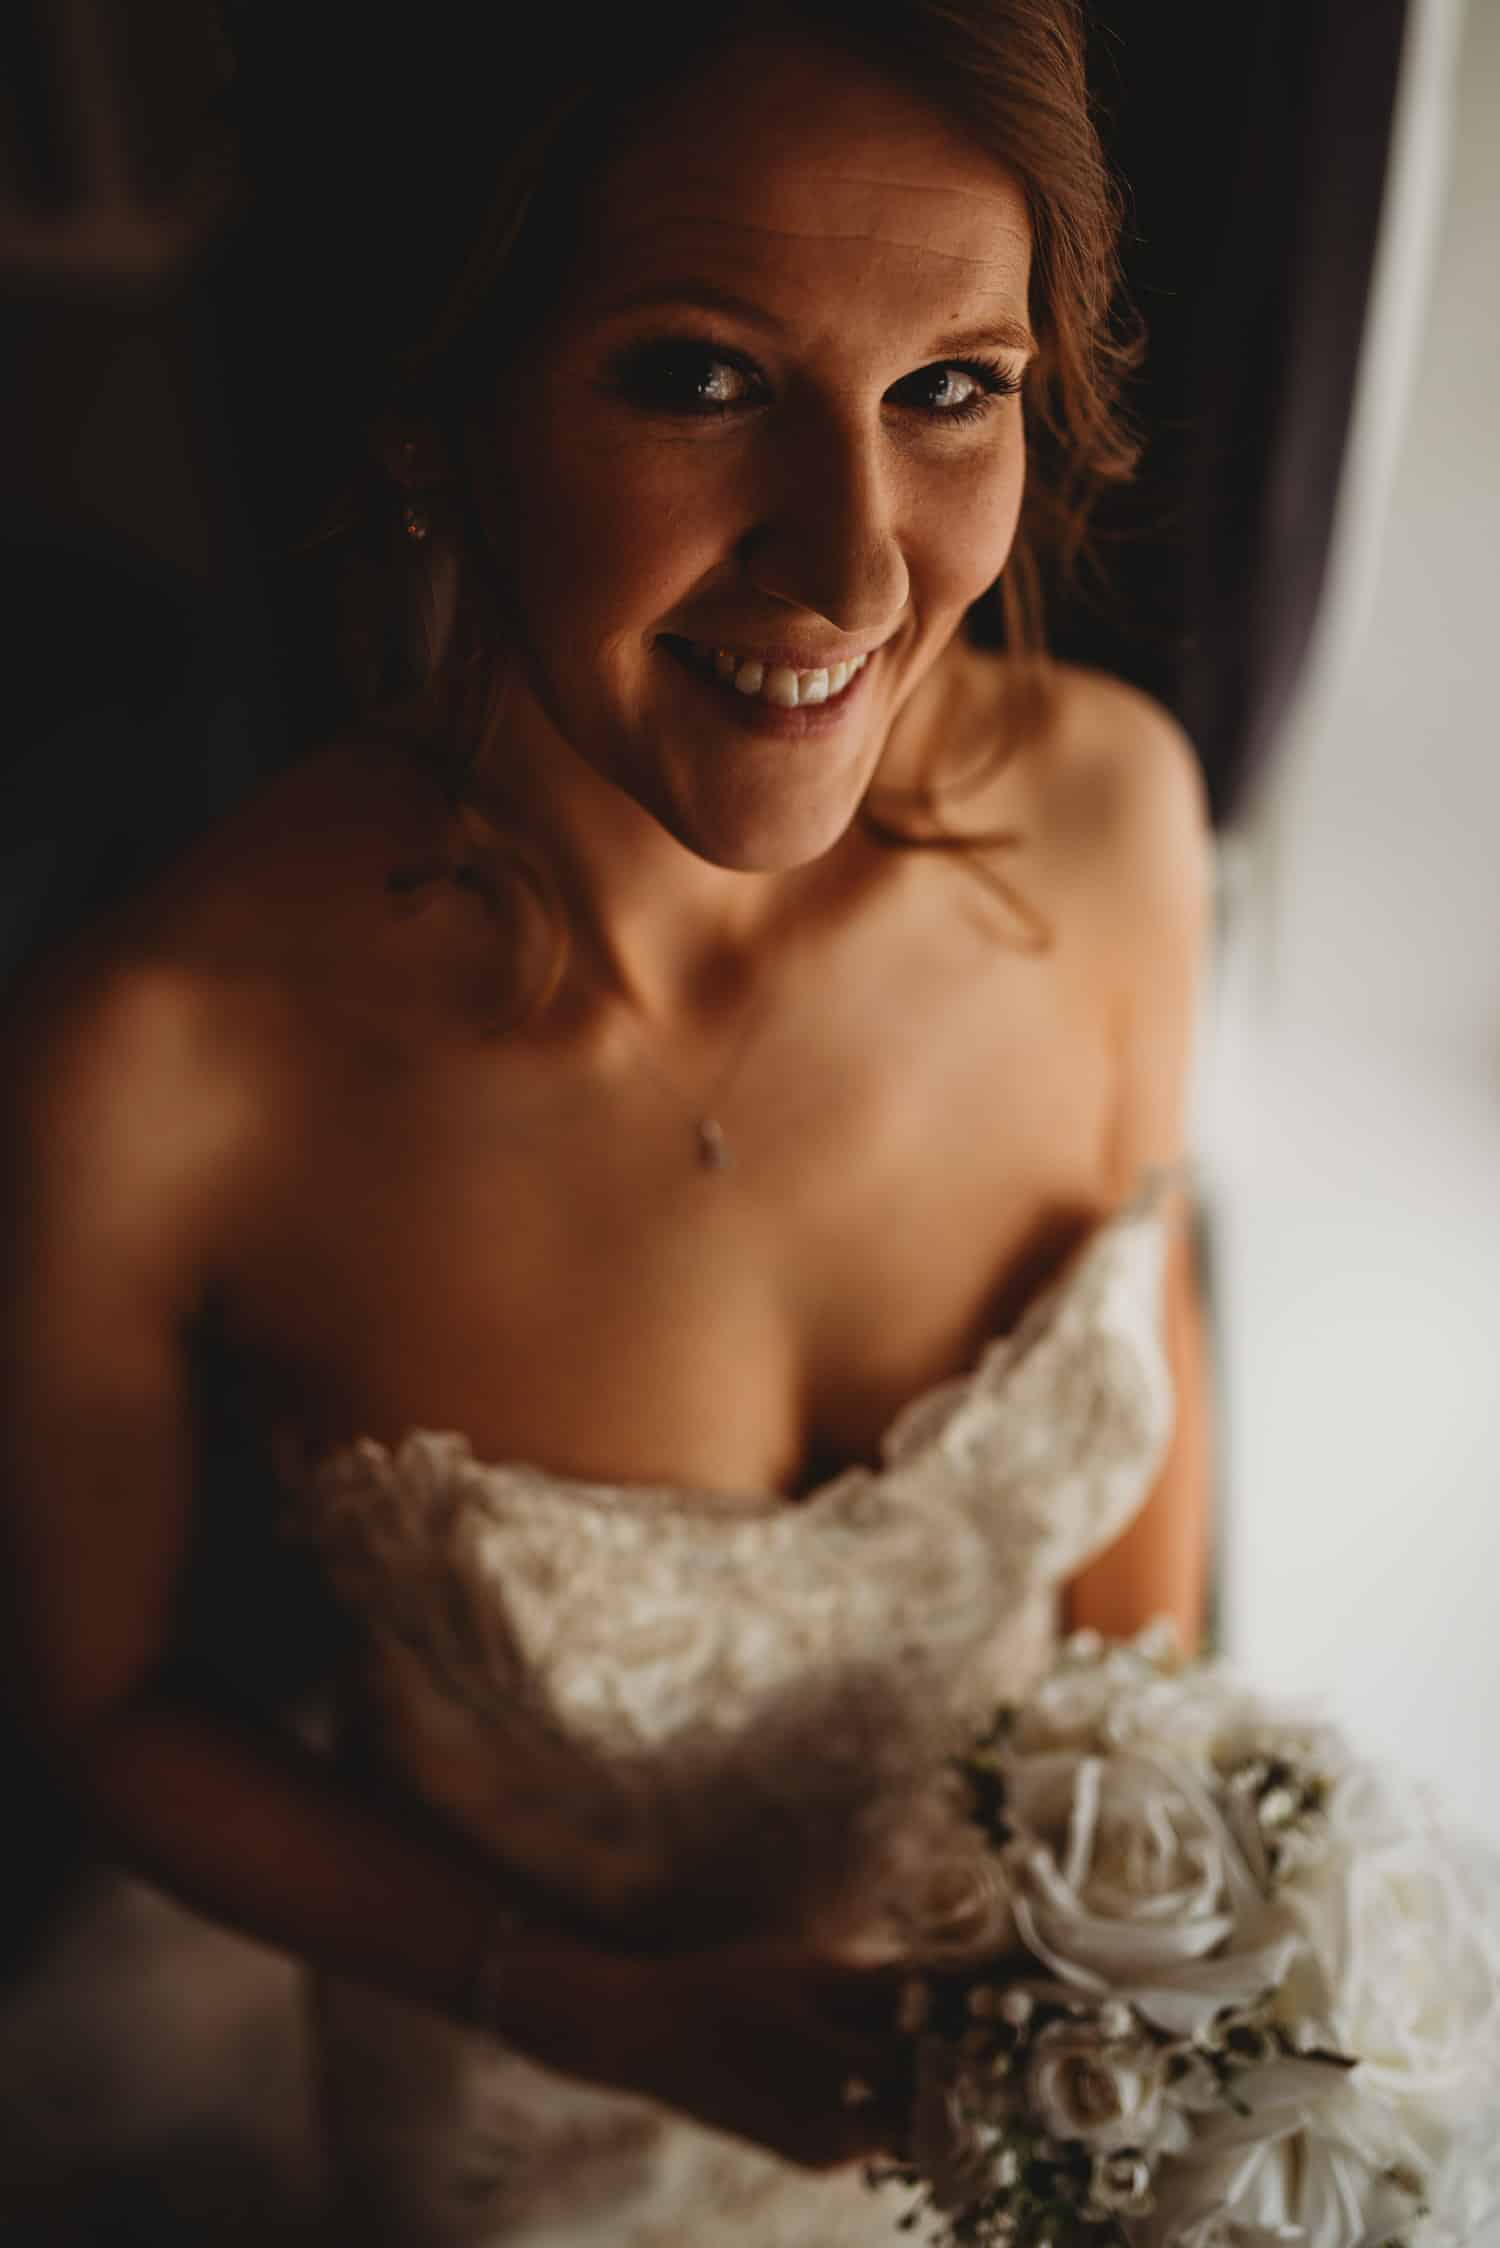 portrait of bride smiling at the camera while holding her bouquet